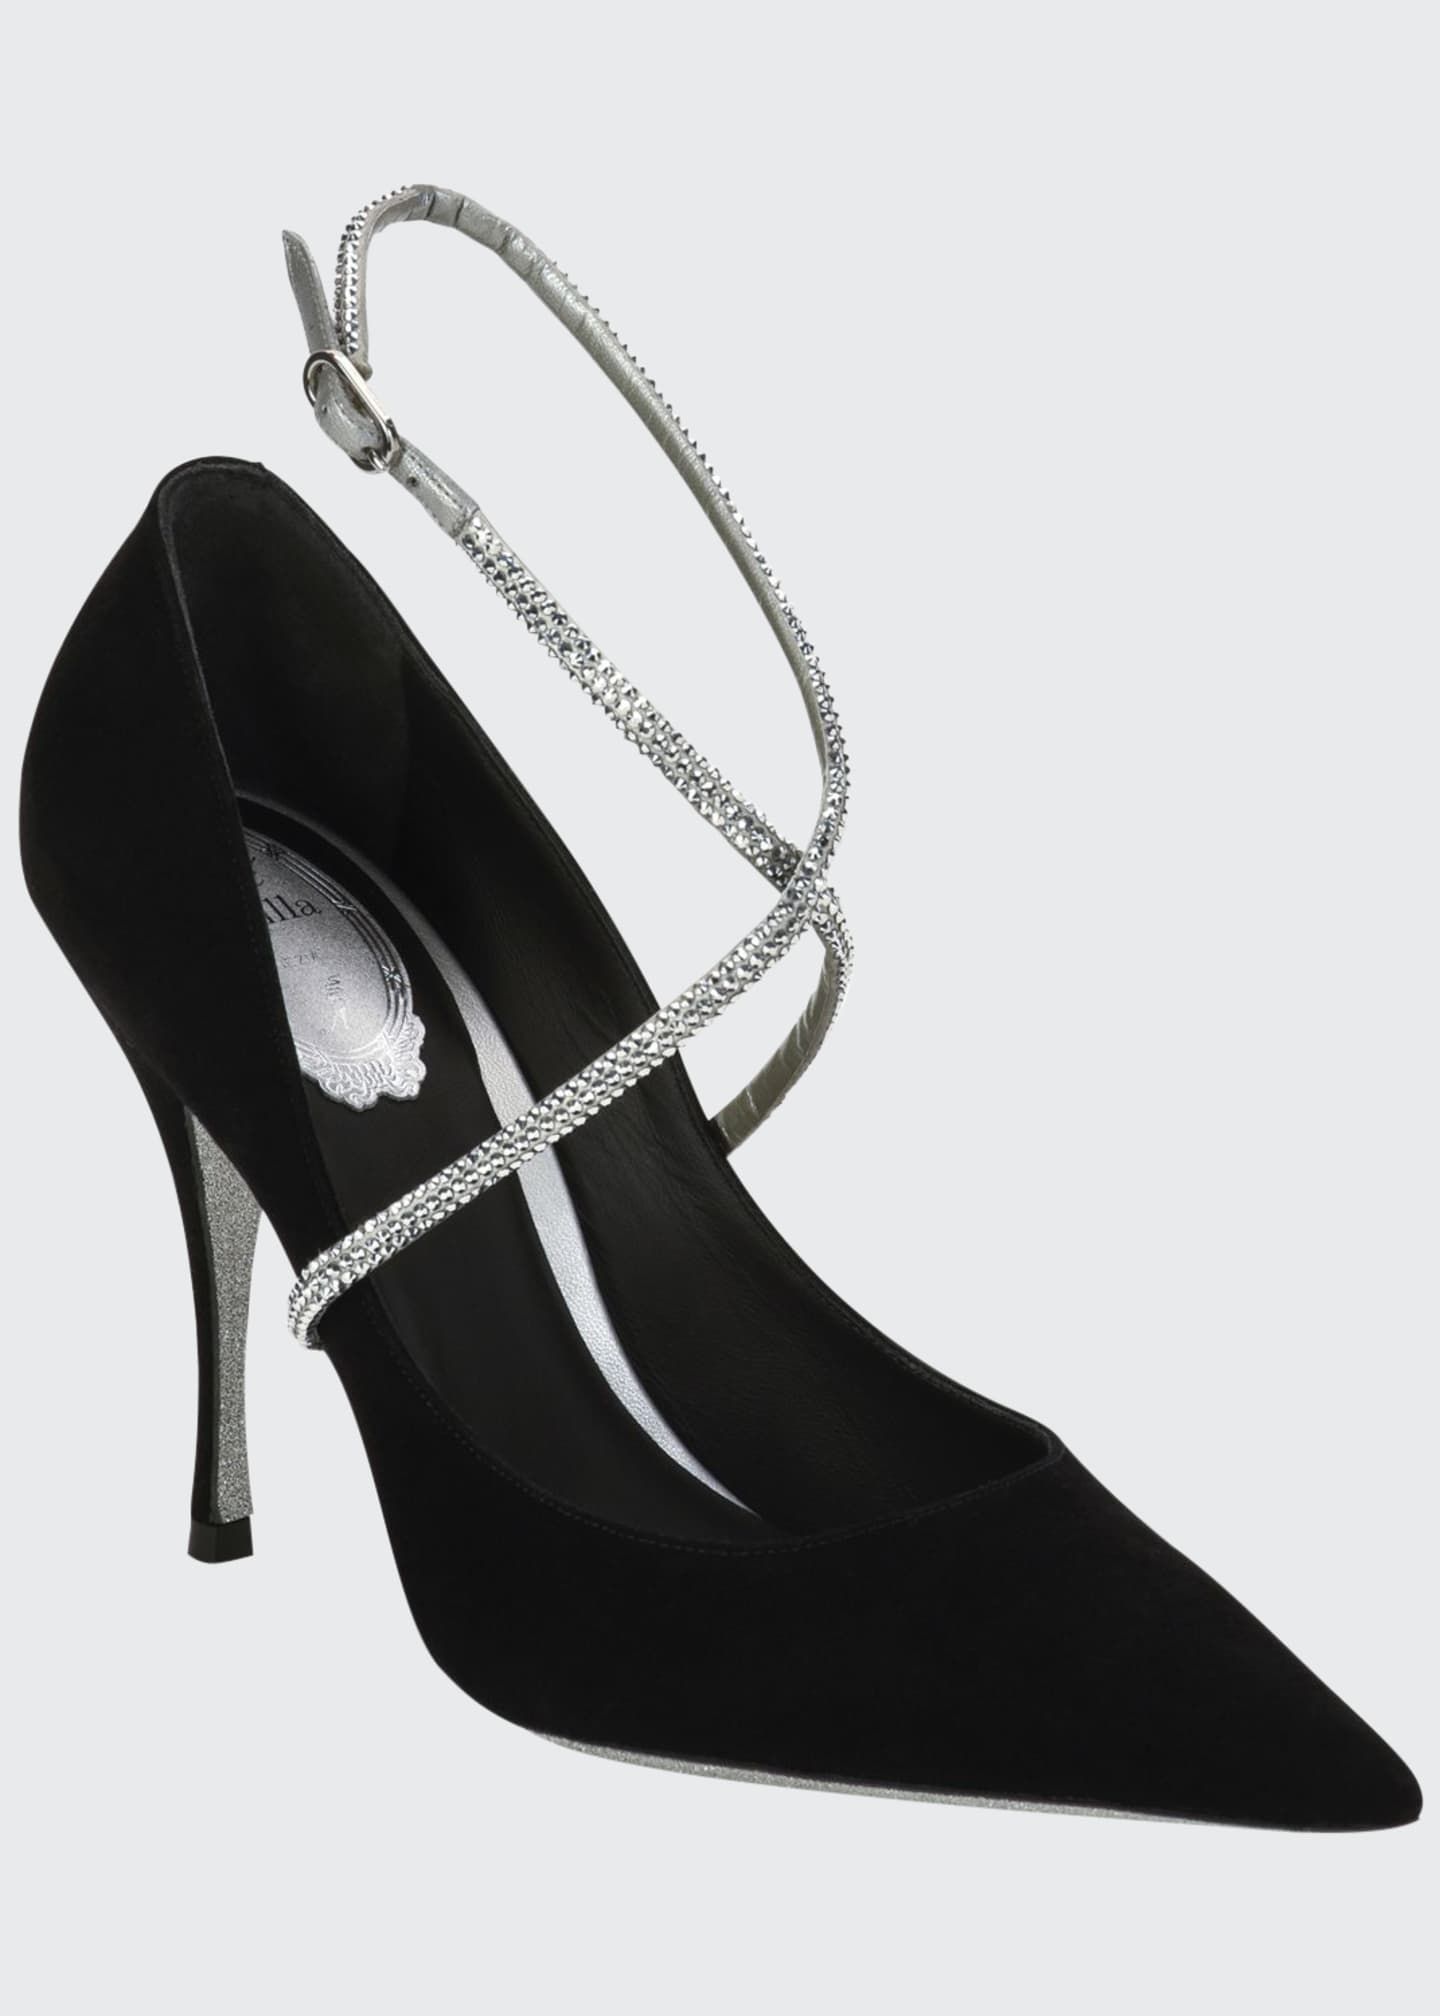 Rene Caovilla Satin Crystal-Embellished Pumps